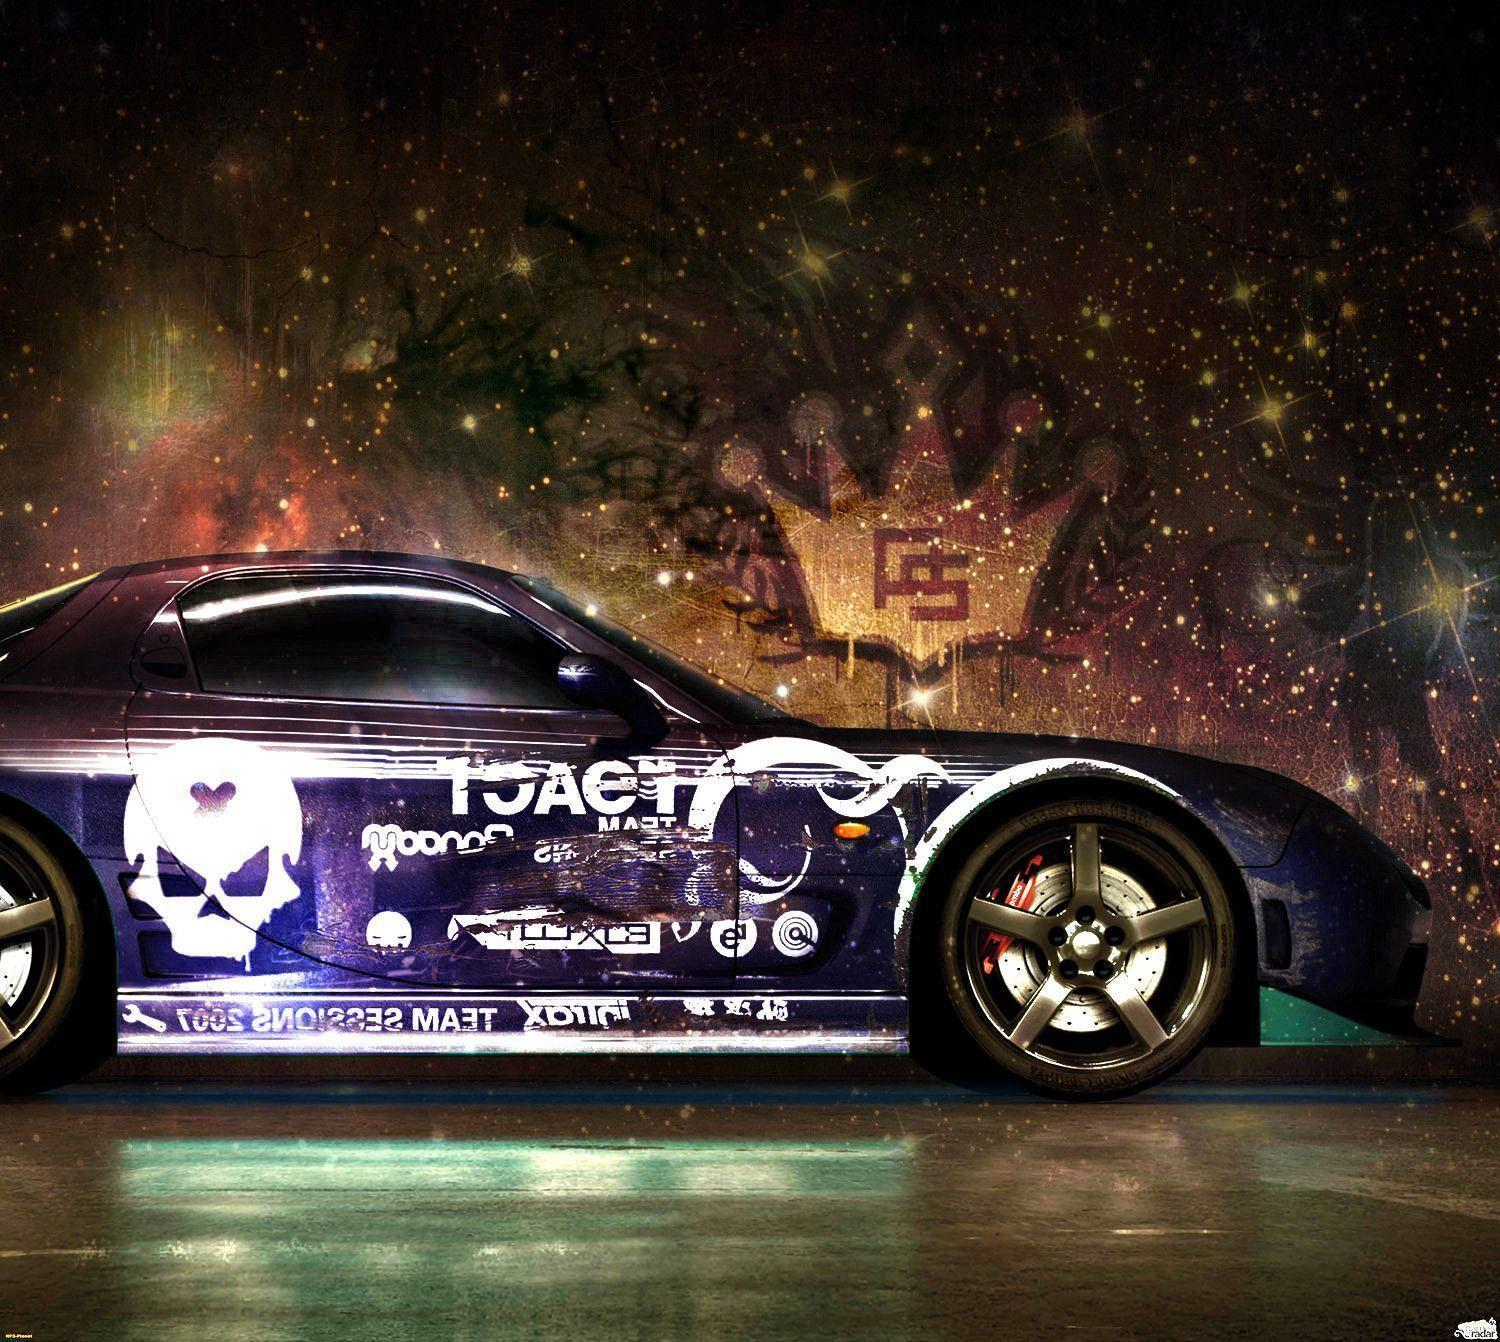 Hd Nfs Cars Wallpapers Need For Speed Wallpapers Wallpaper Cave